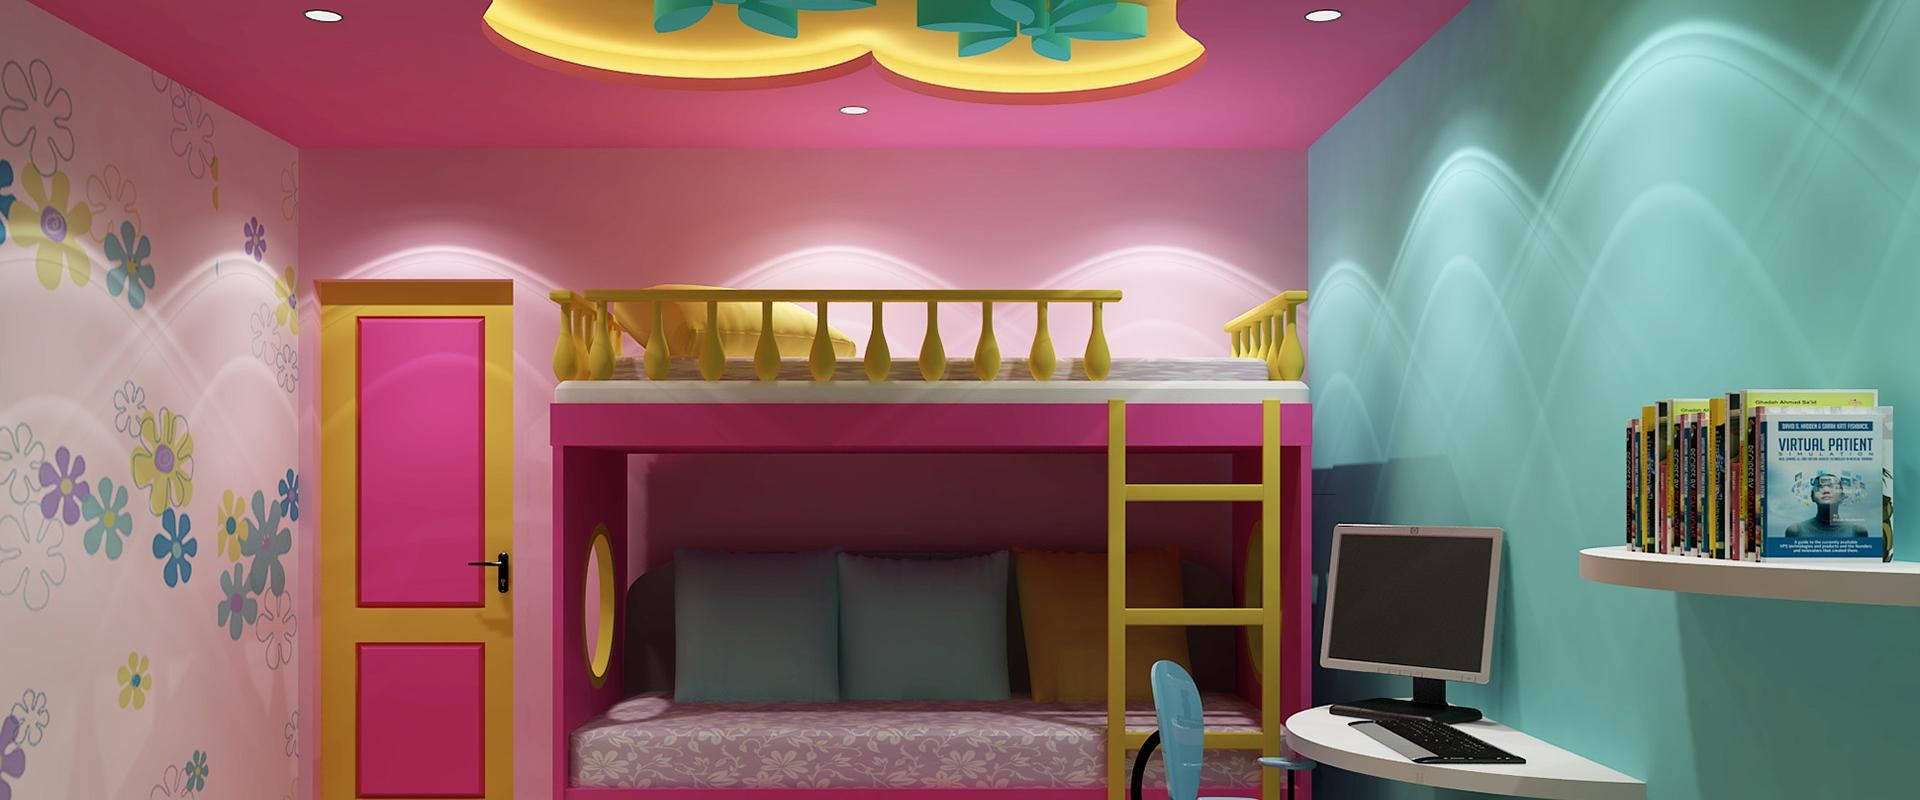 Kids room | False Ceiling | Gypsum Board | Drywall | Plaster